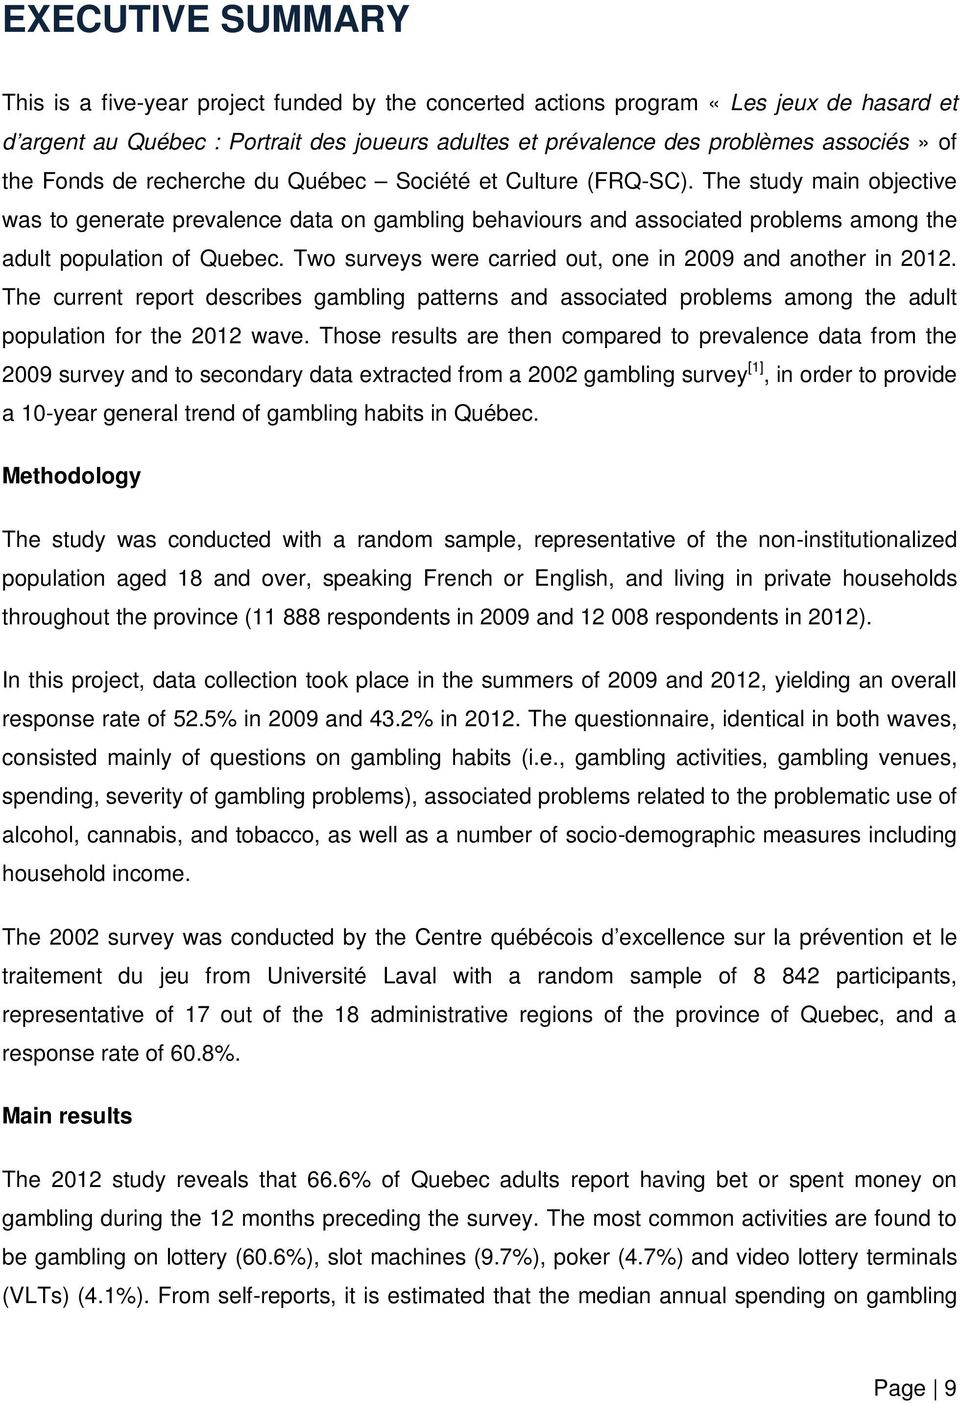 The study main objective was to generate prevalence data on gambling behaviours and associated problems among the adult population of Quebec.